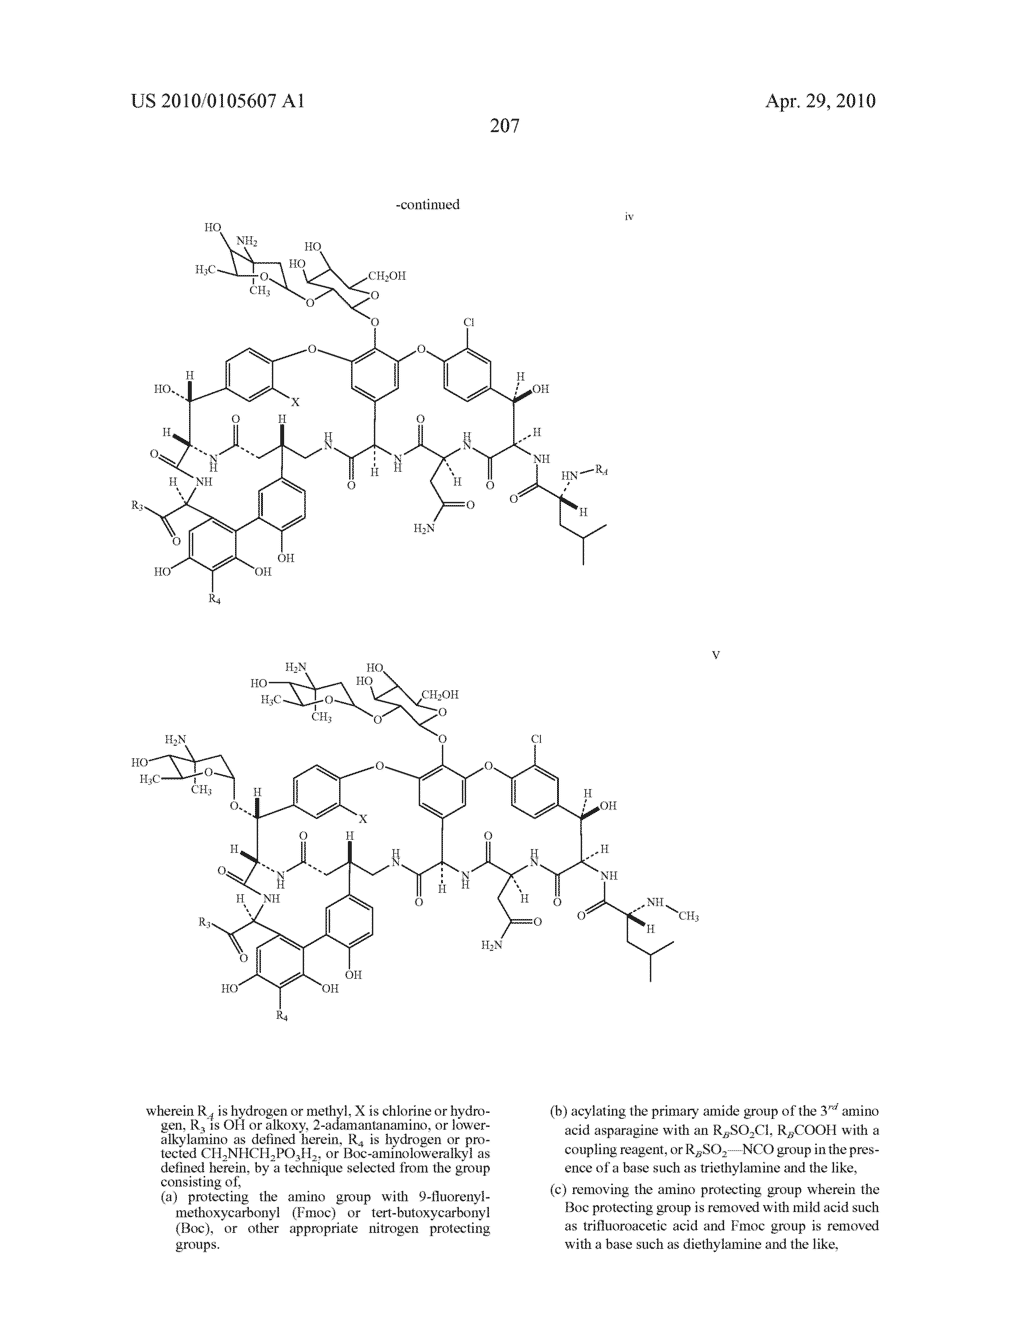 NOVEL SEMI-SYNTHETIC GLYCOPEPTIDES AS ANTIBACTERIAL AGENTS - diagram, schematic, and image 207